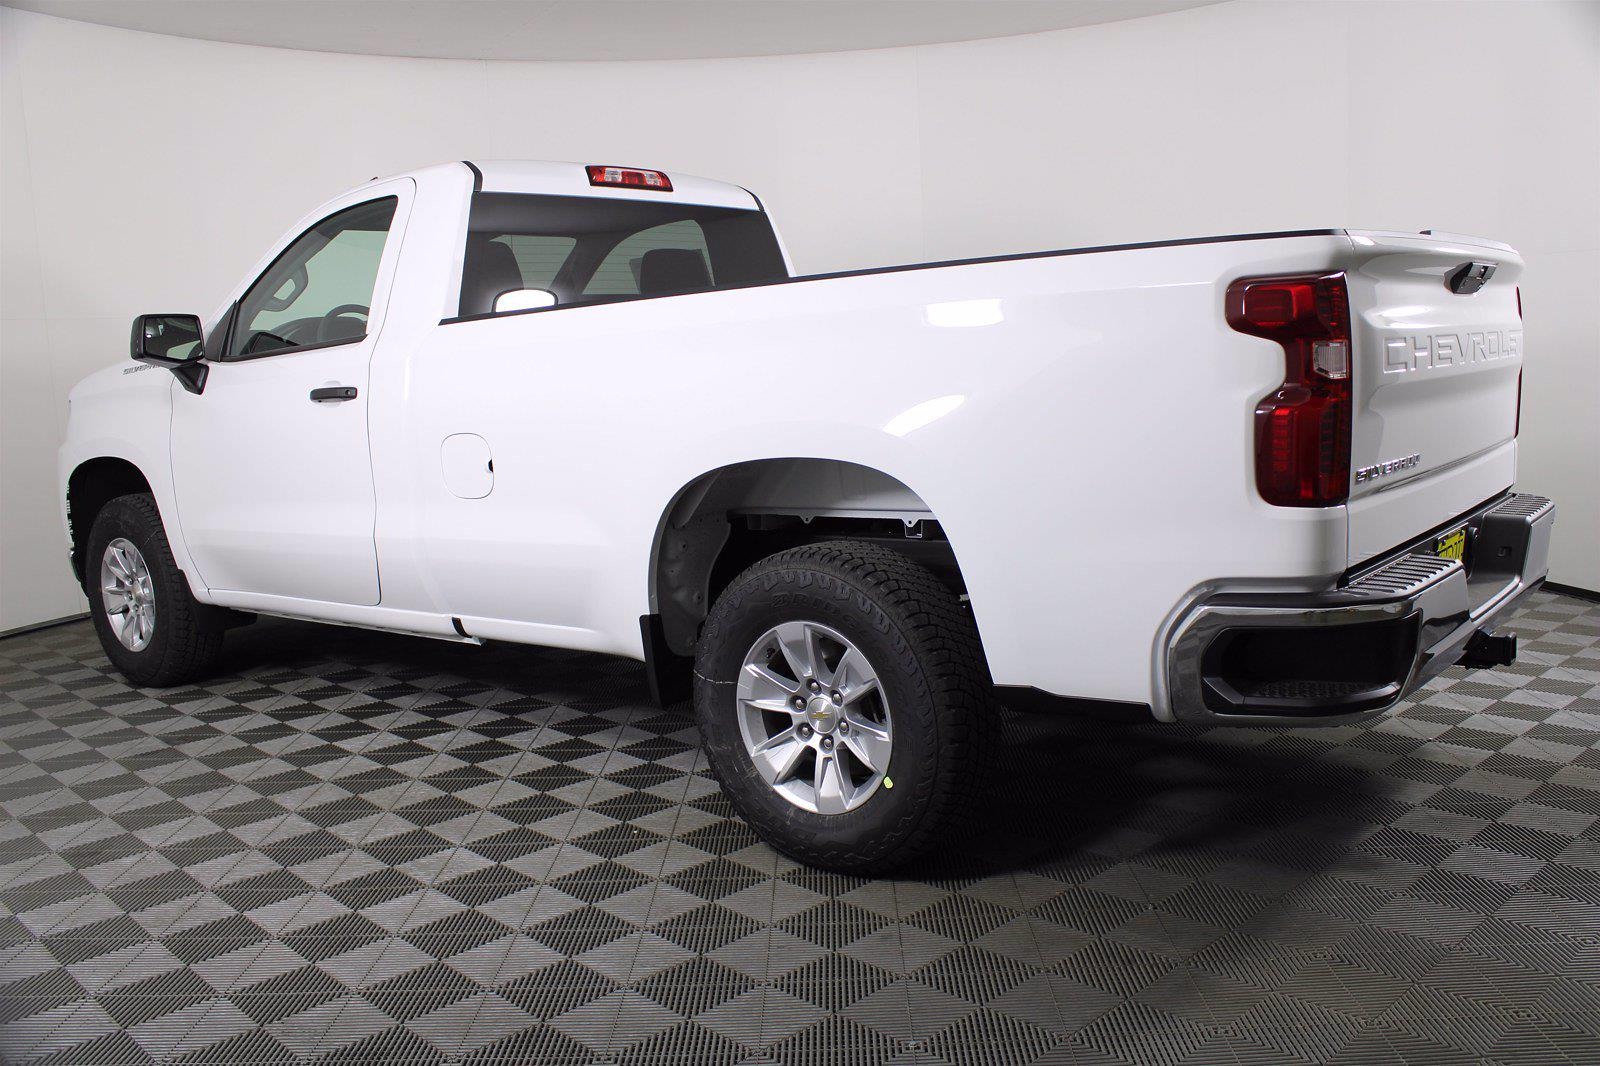 2021 Chevrolet Silverado 1500 Regular Cab 4x2, Pickup #D110765 - photo 2